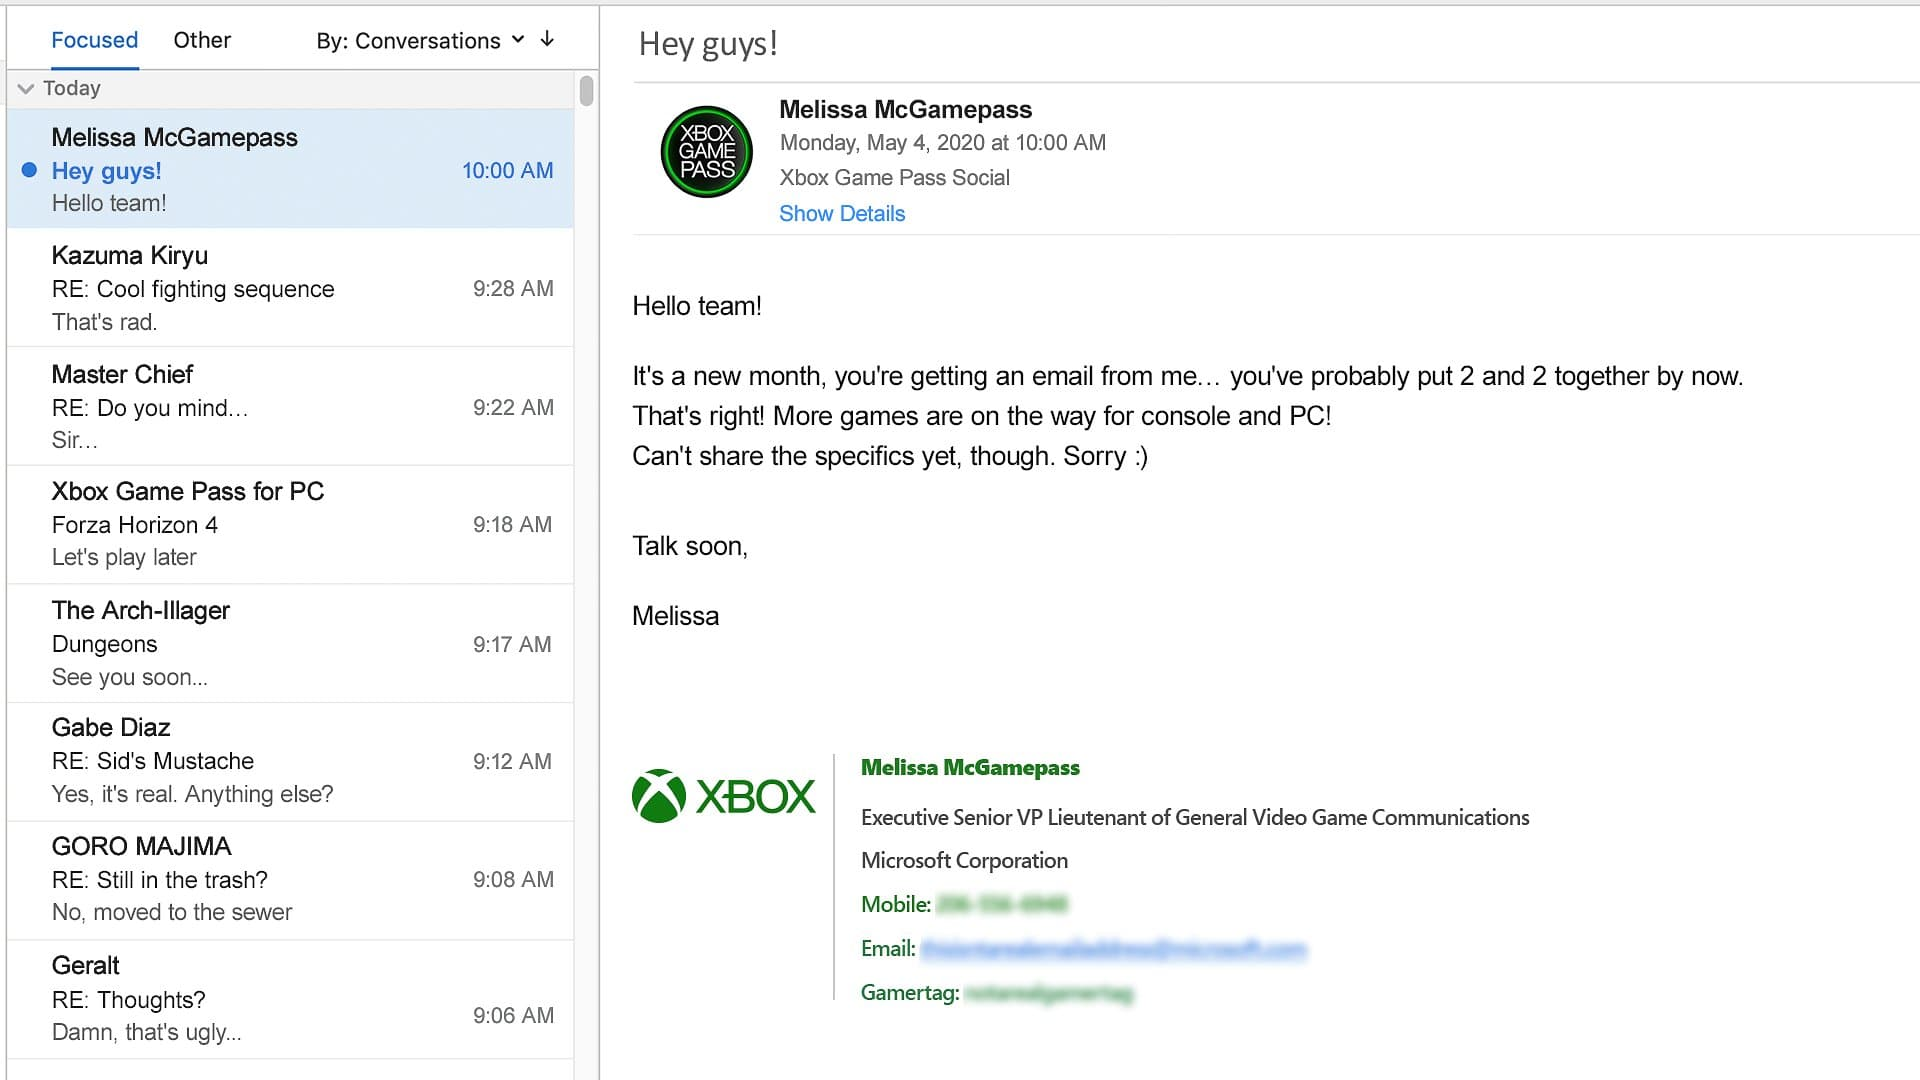 Xbox Game Pass: Νέοι τίτλοι αναμένετε να ανακοινωθούν στο Inside XBOX!